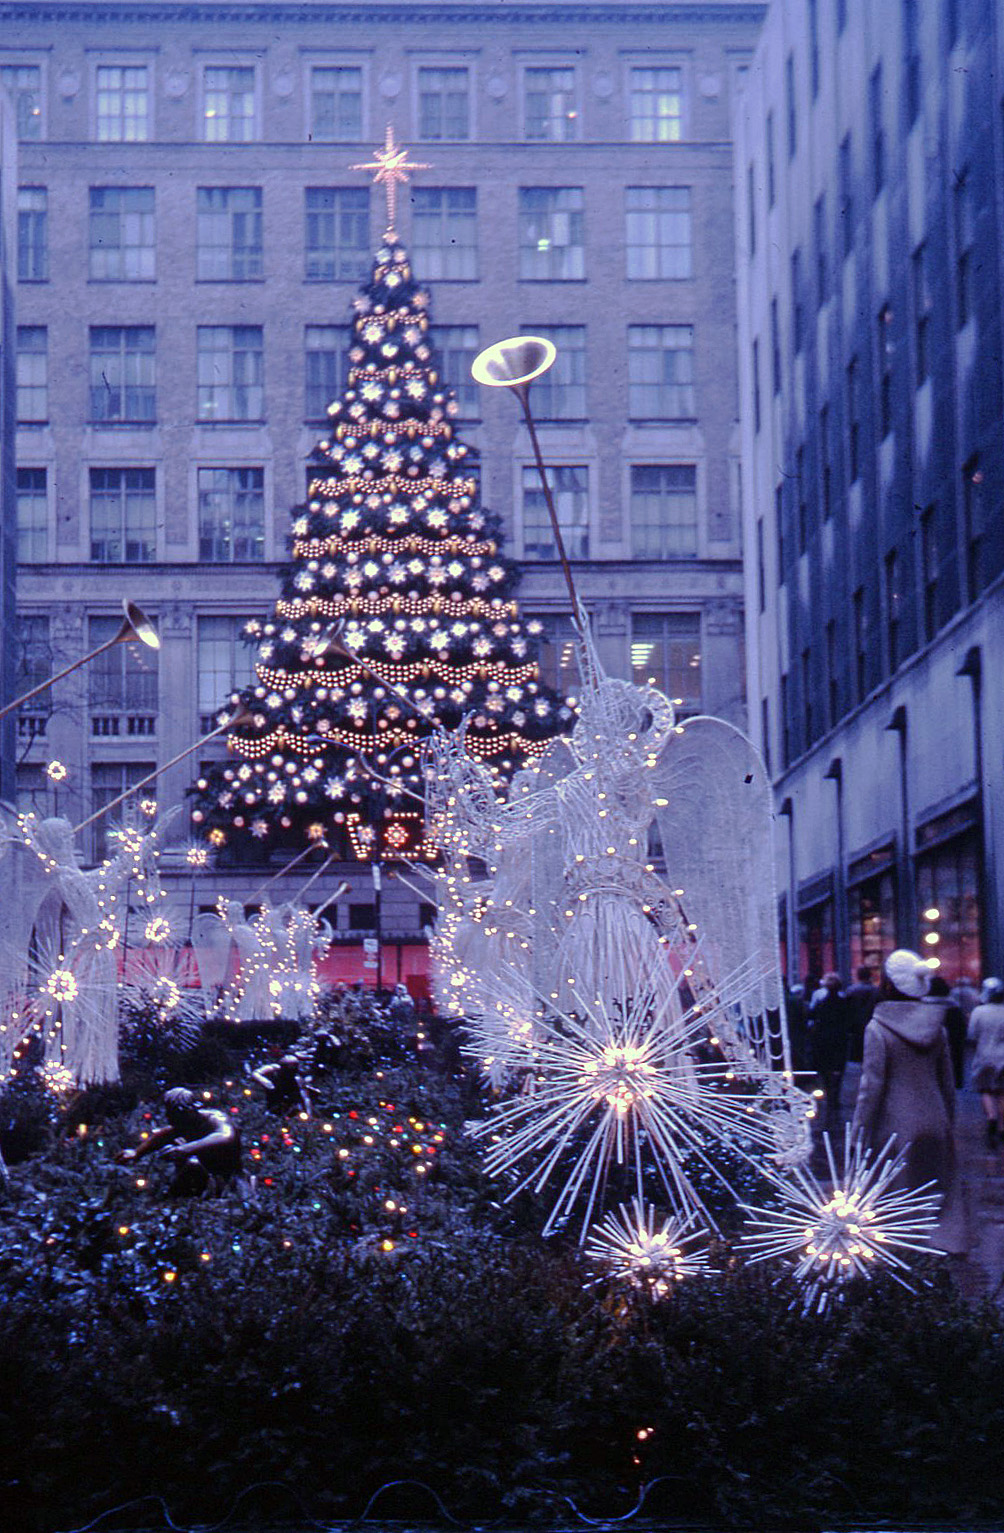 File:Rockefeller Center Christmas tree, New York, 1970 - Flickr ...